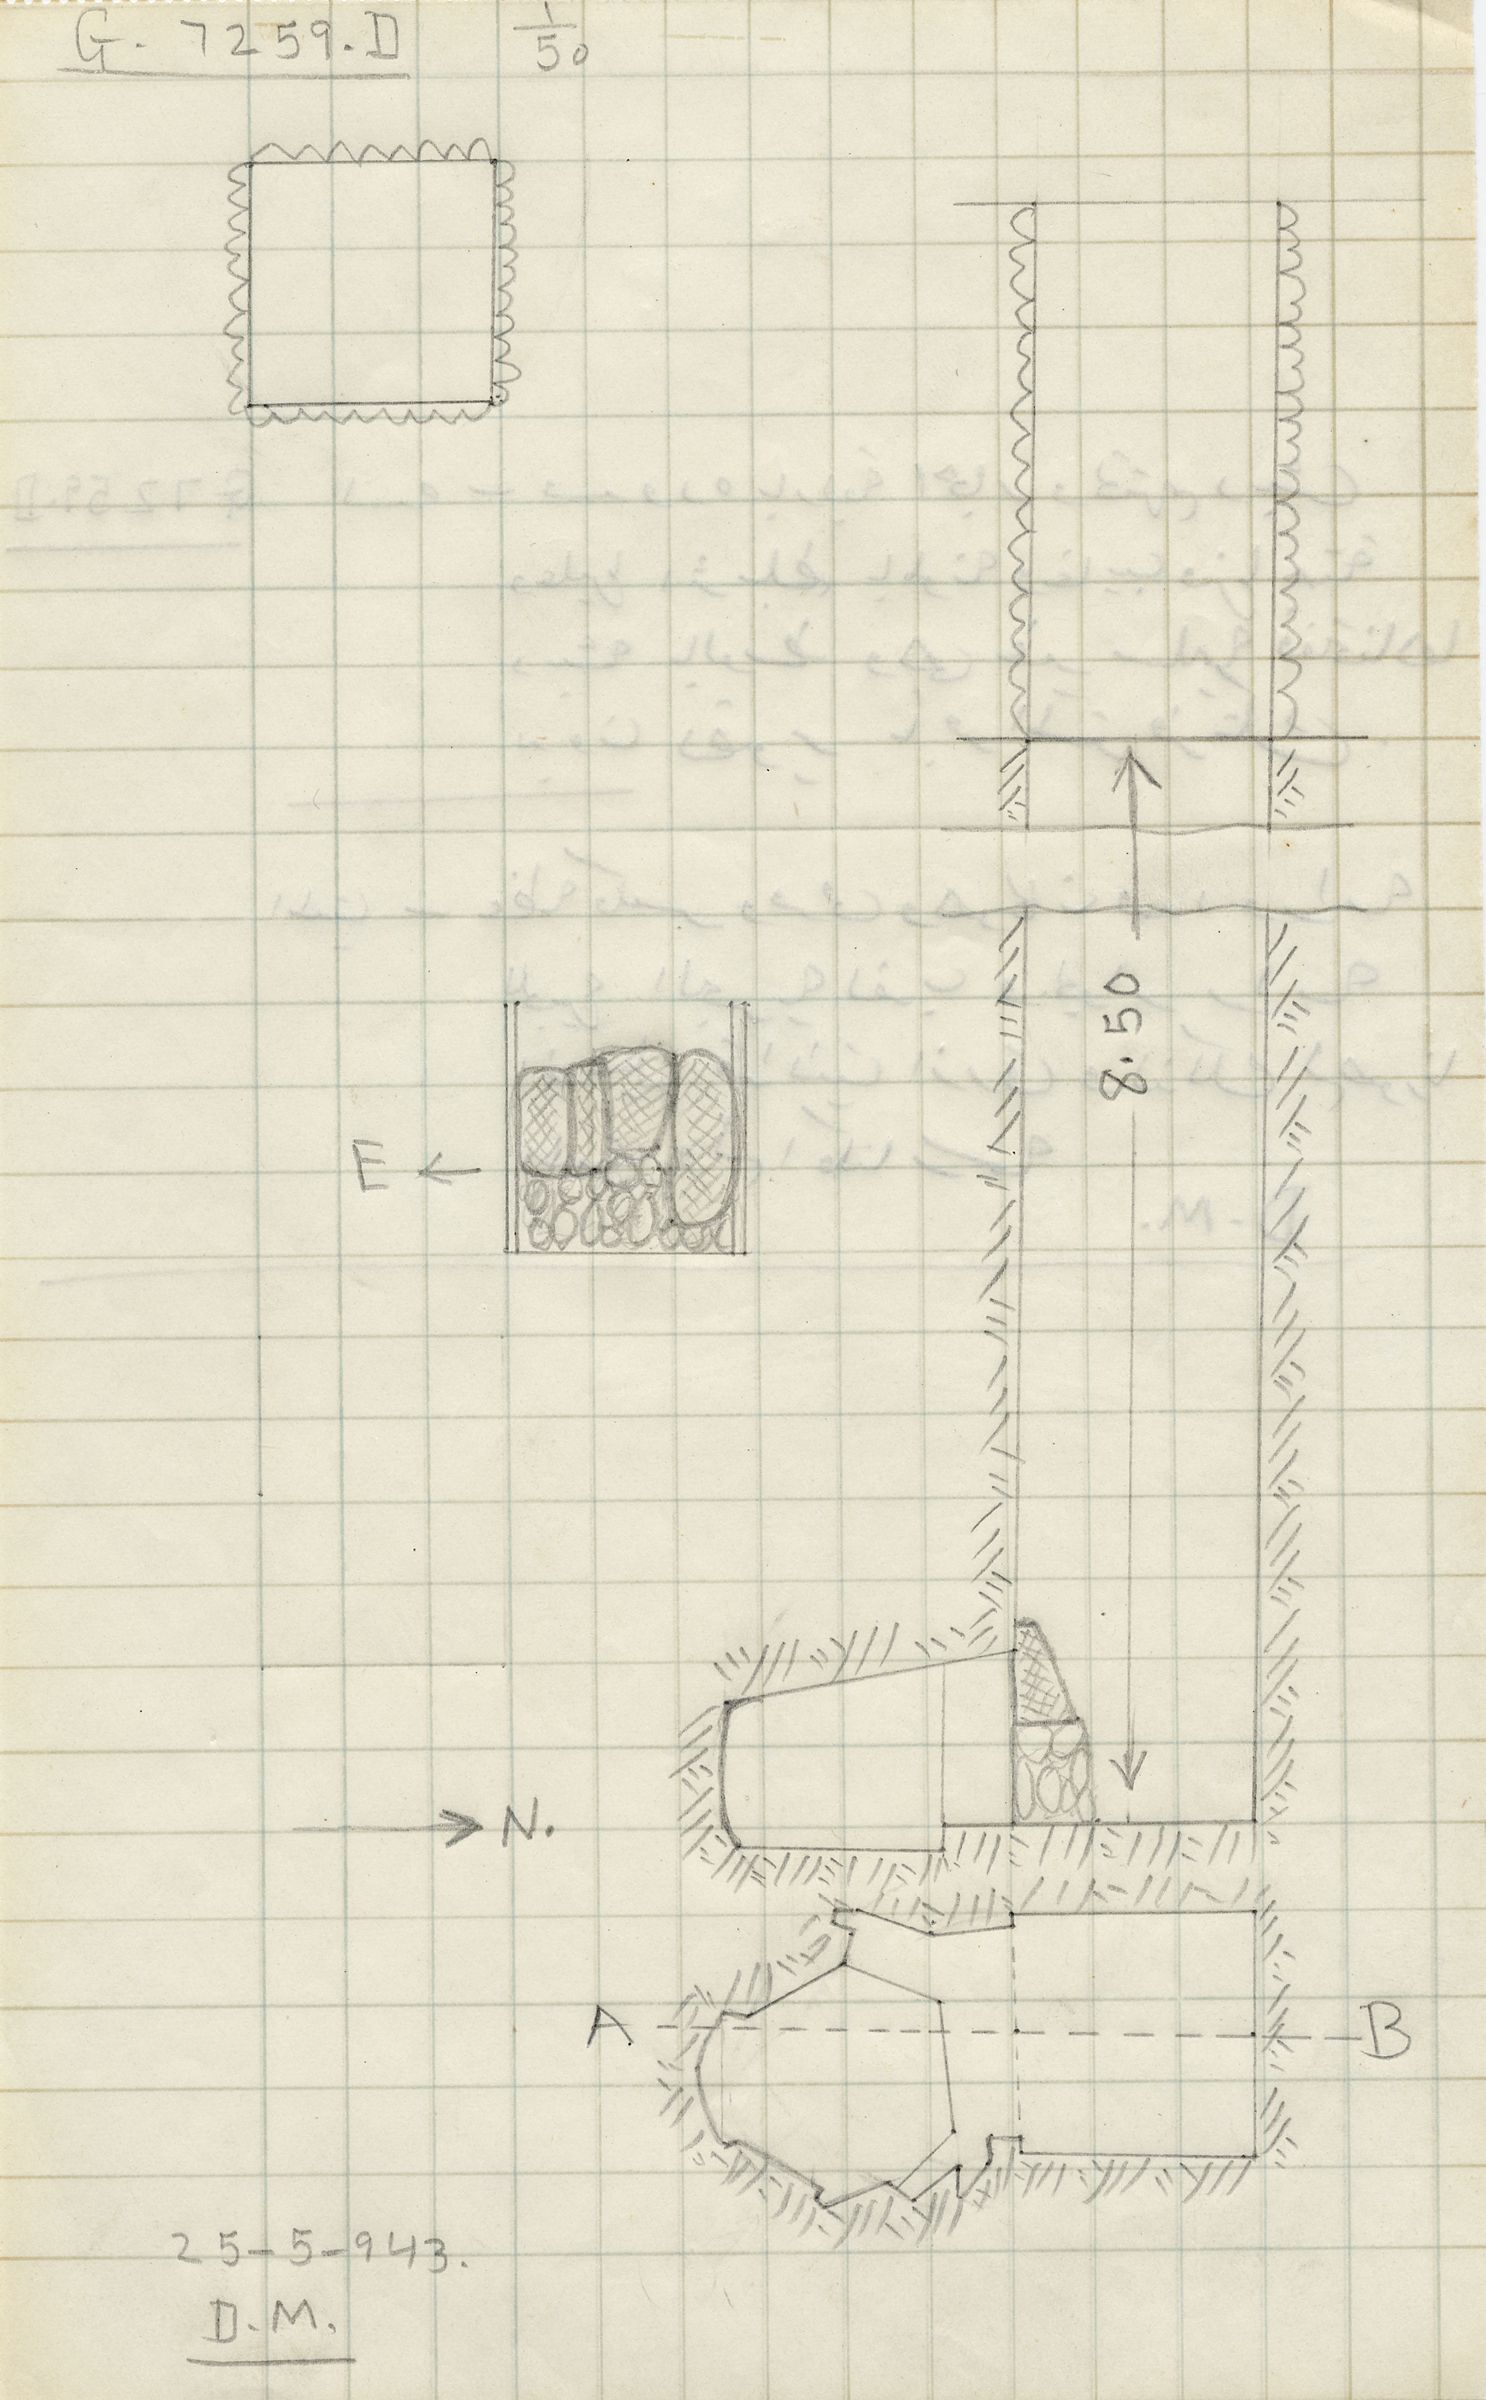 Maps and plans: G 7259, Shaft D